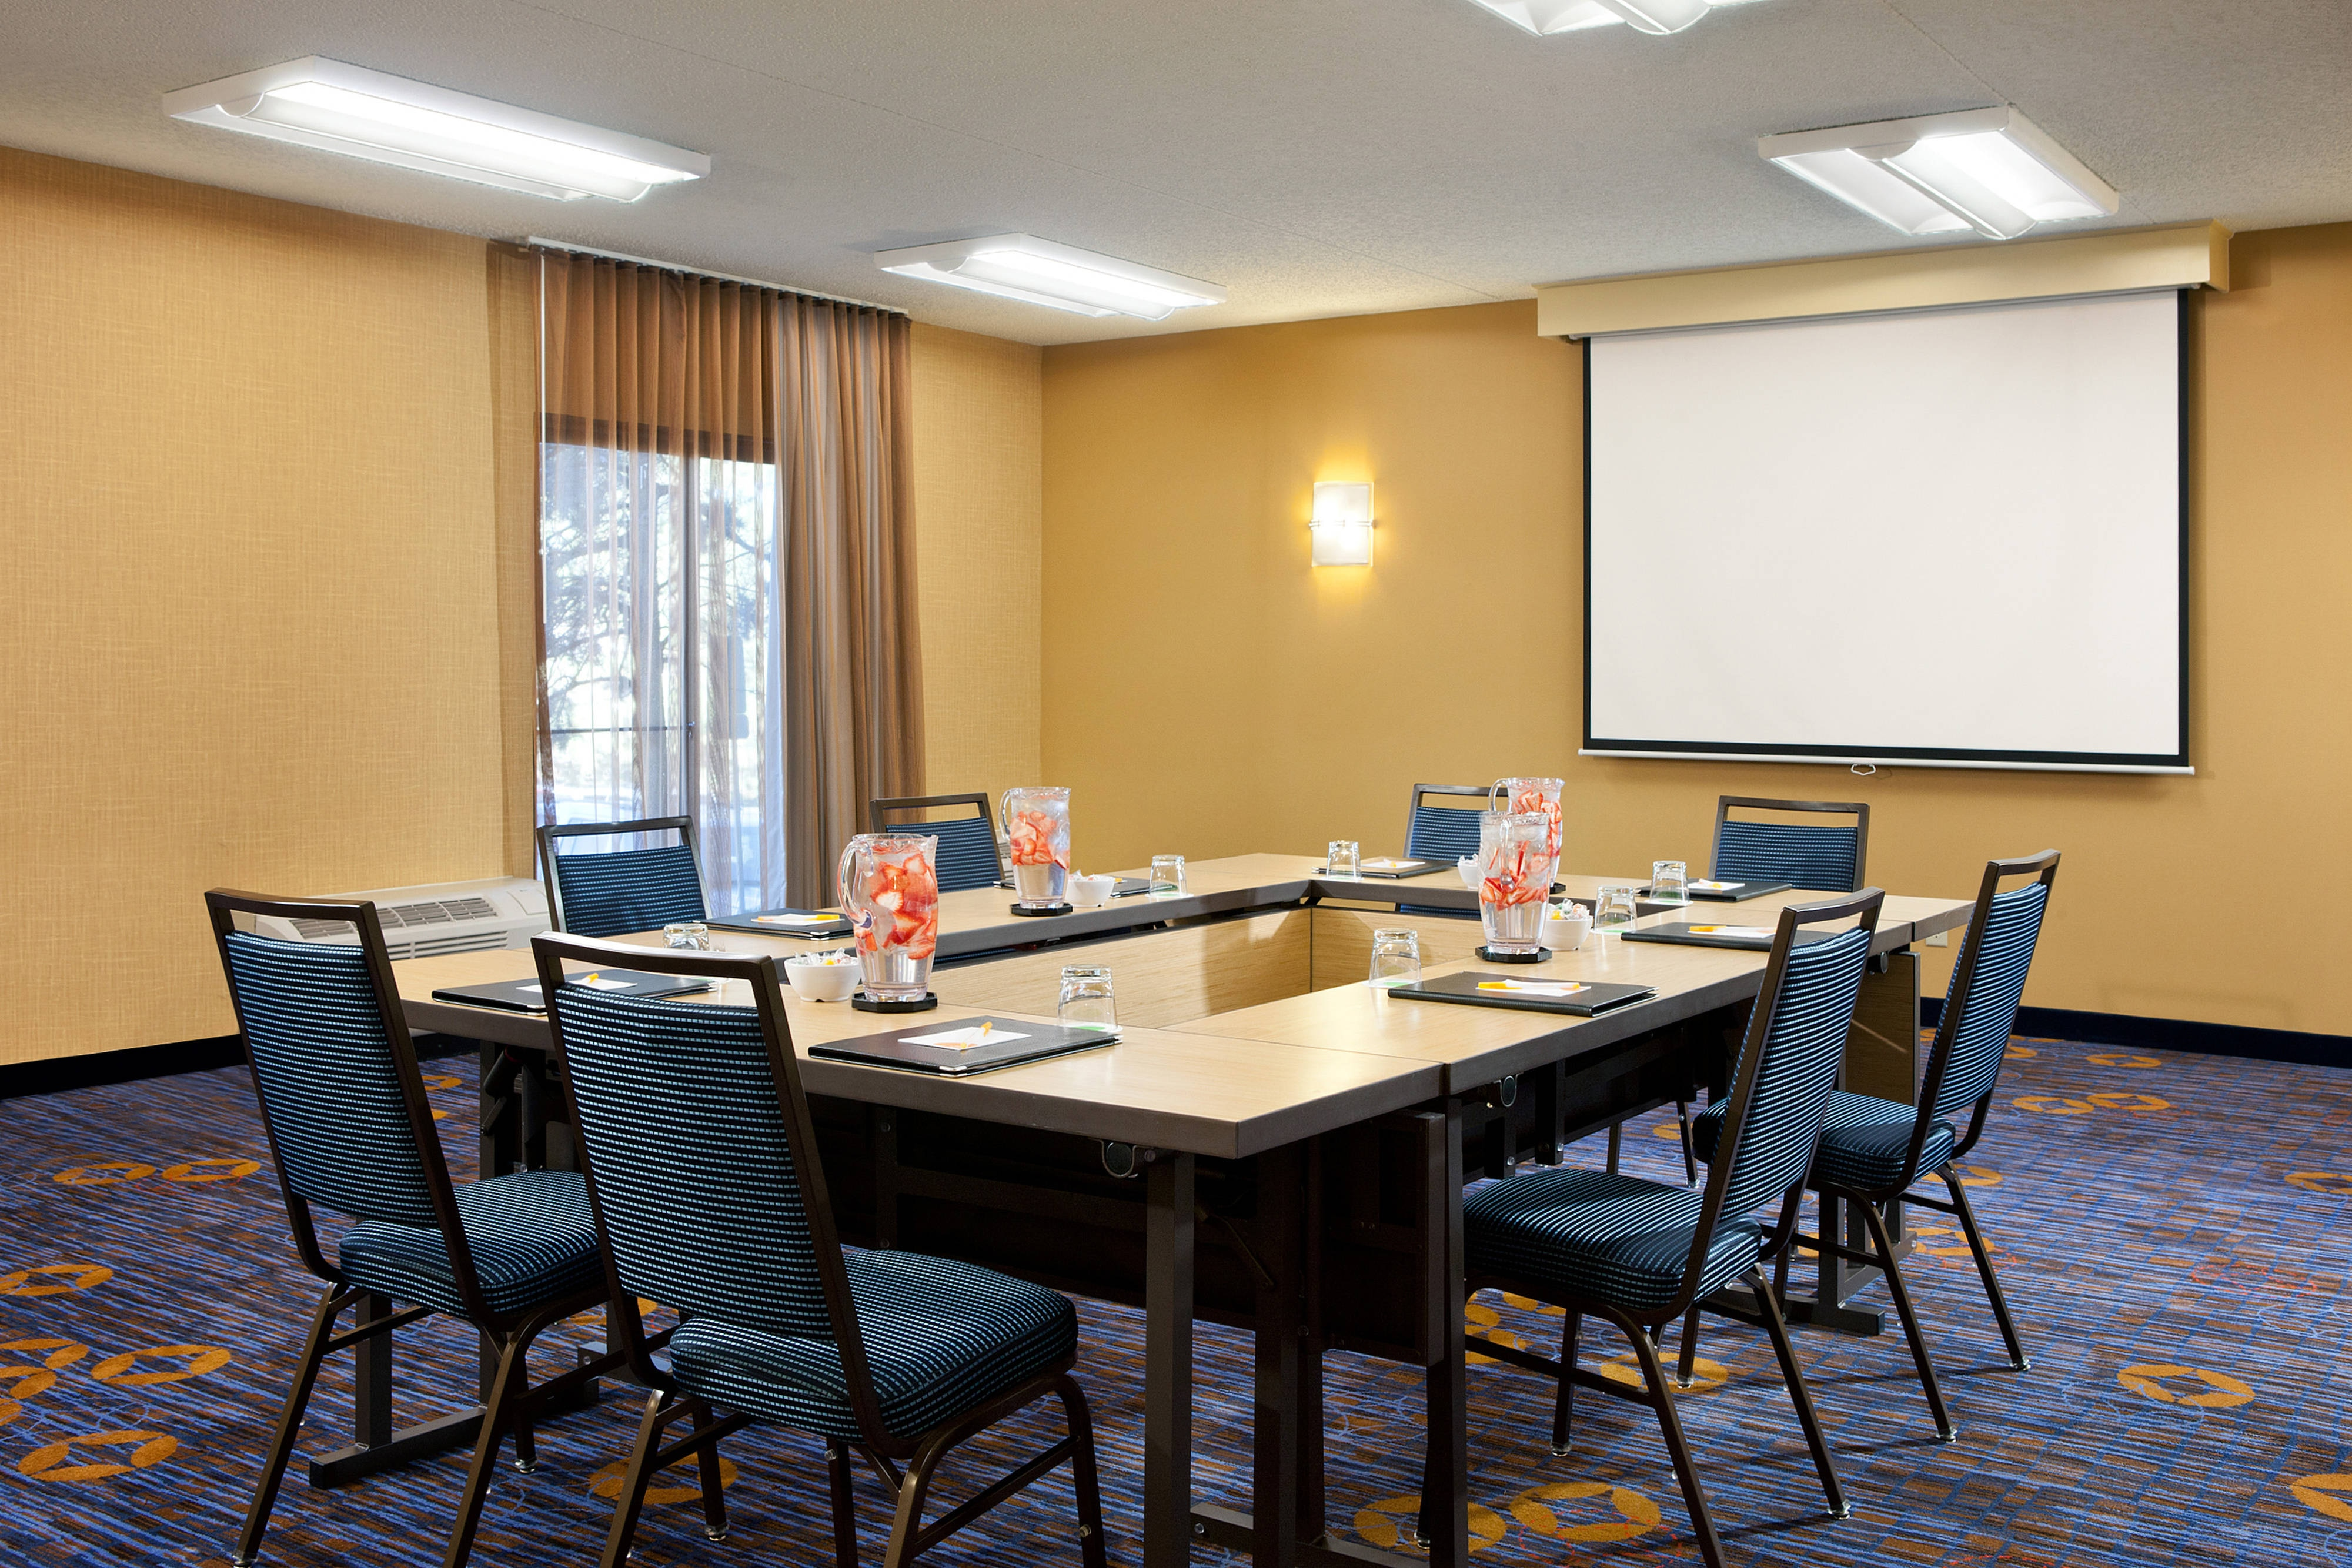 Meeting Room – Hollow Square Style